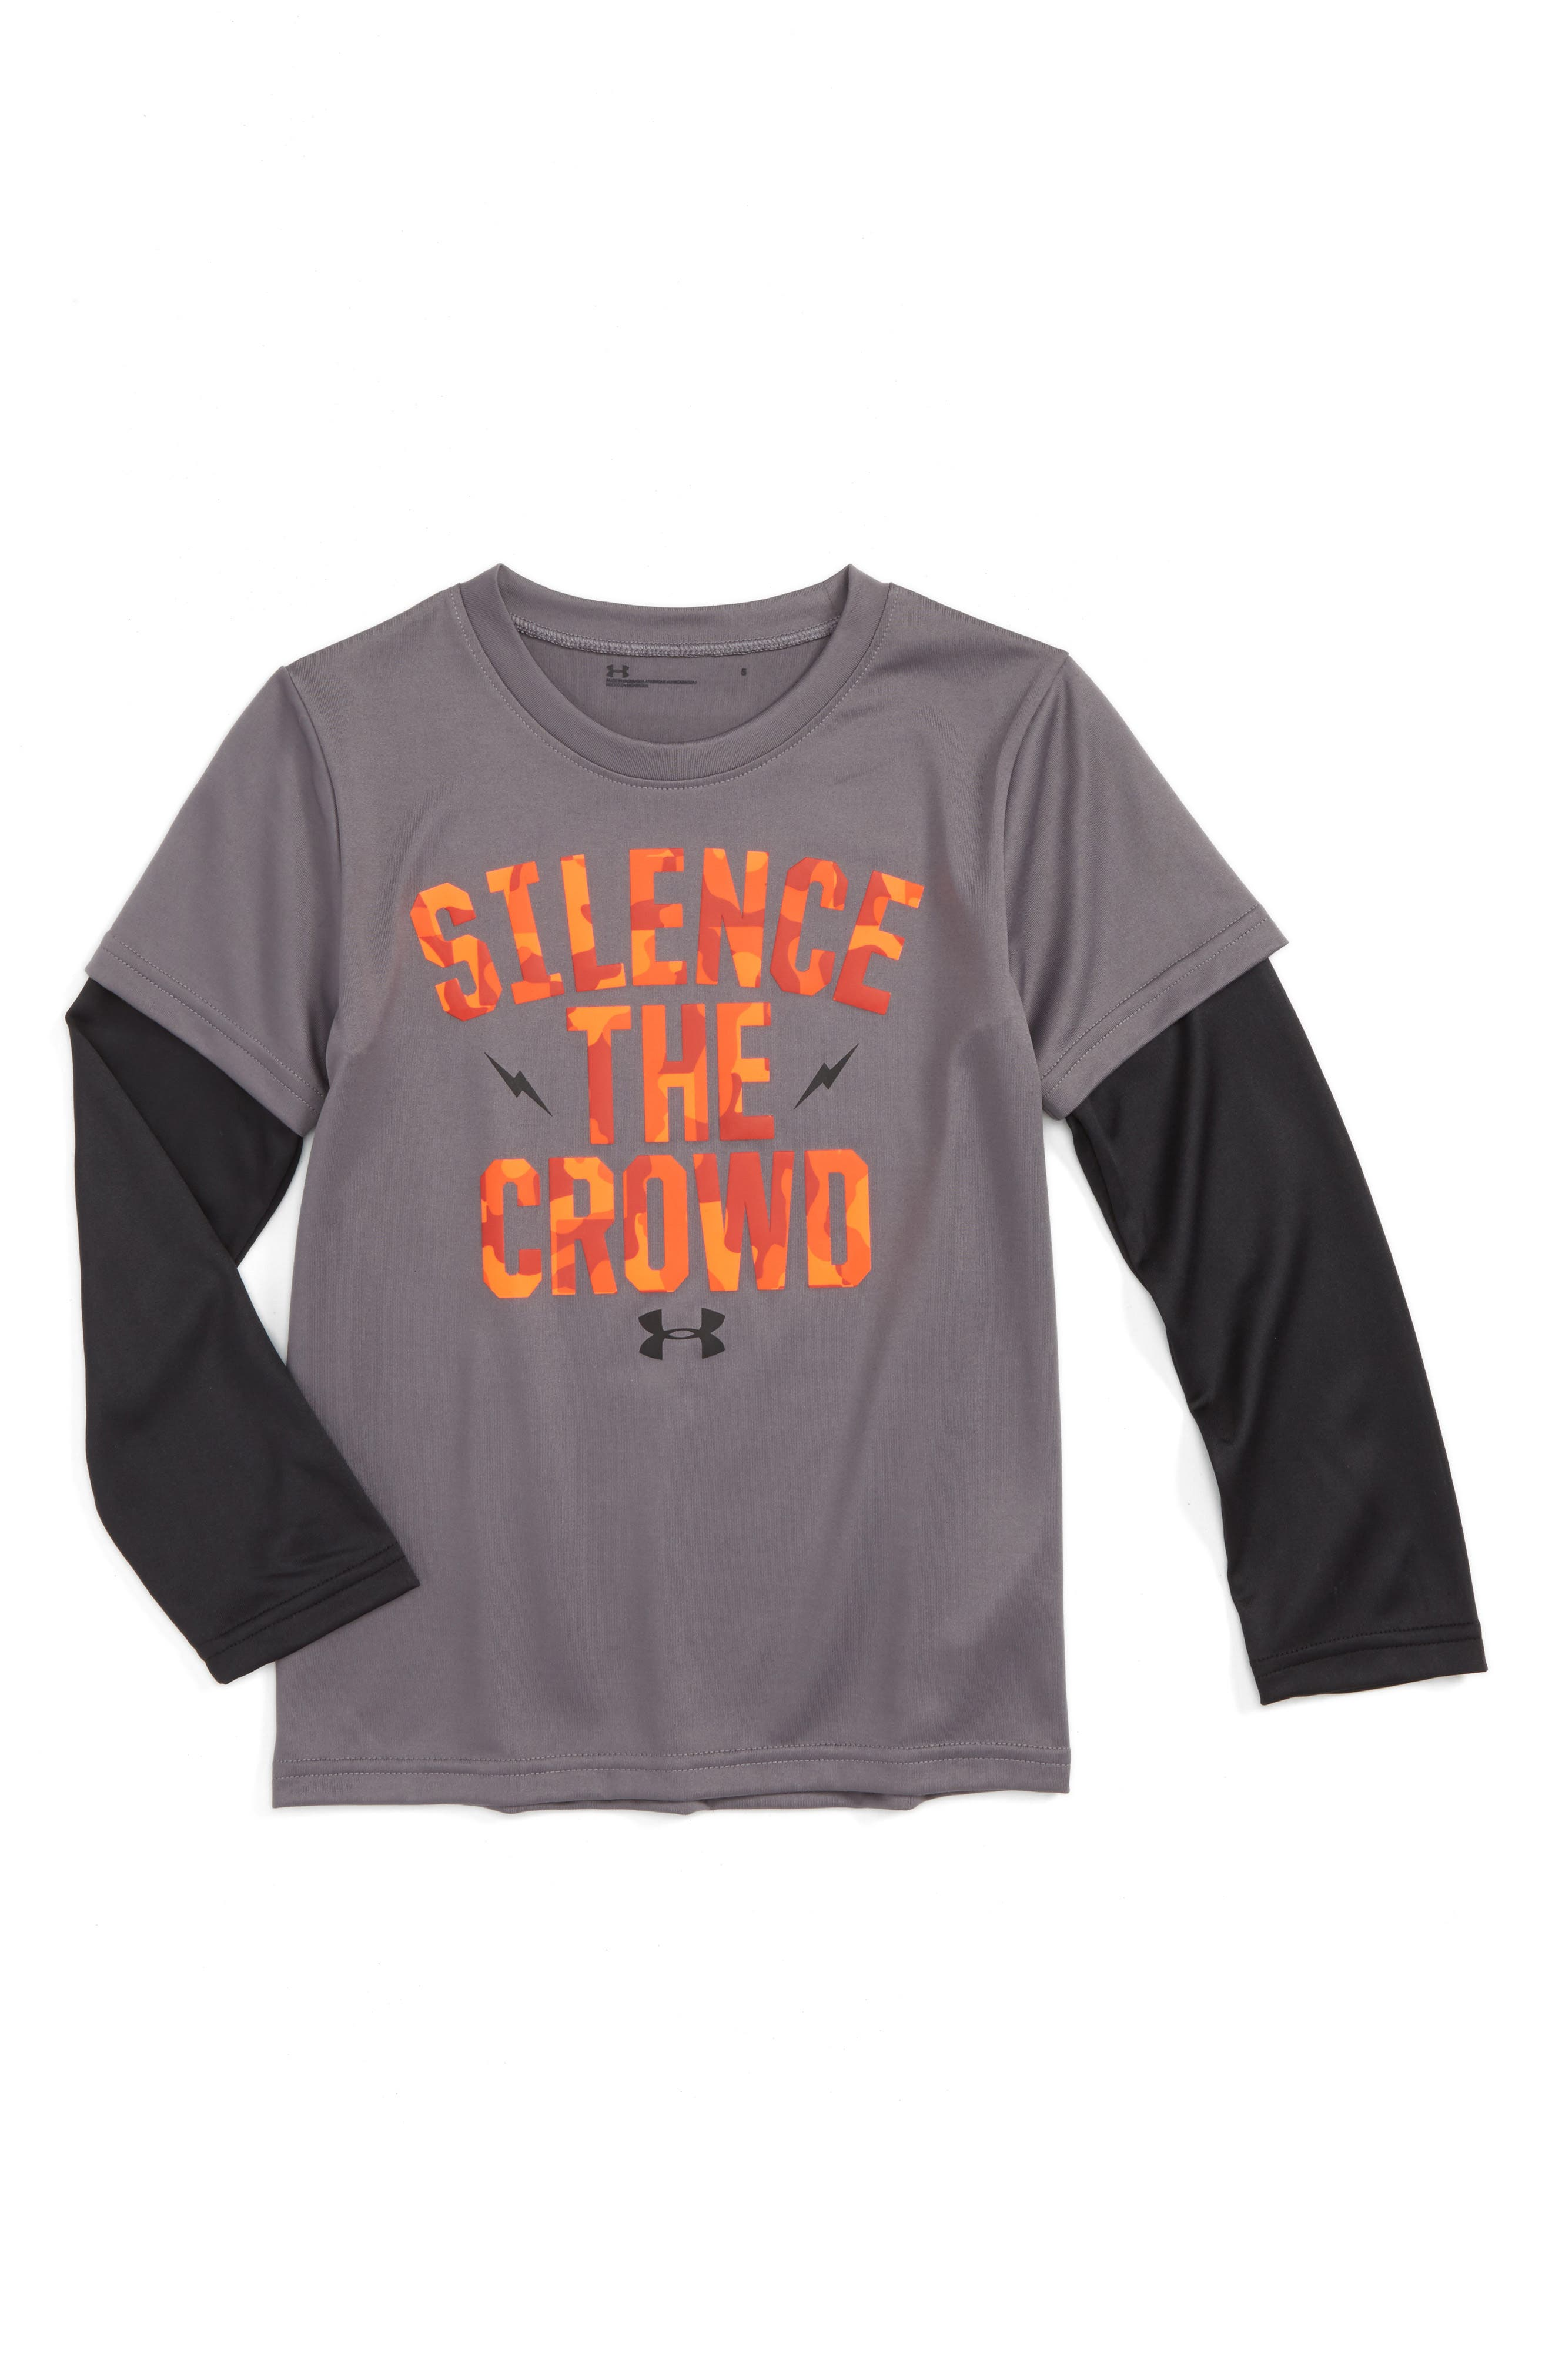 Under Armour Silence The Crowd Graphic T-Shirt (Toddler Boys & Little Boys)